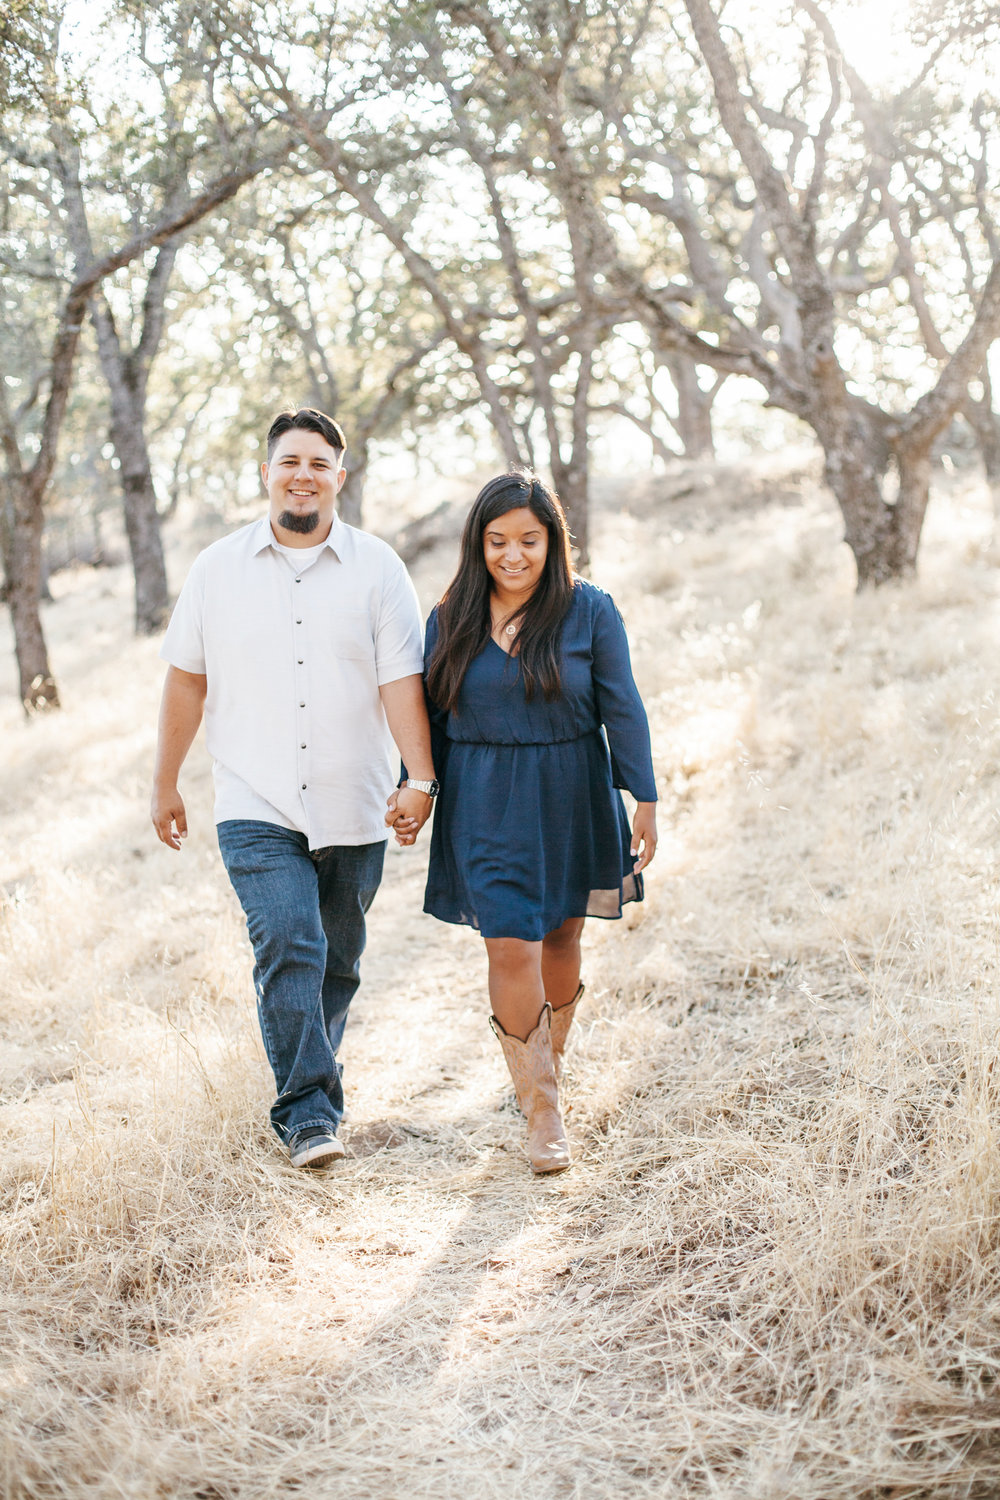 chris-diana-engagement-session-in-walnut-creek-california-02